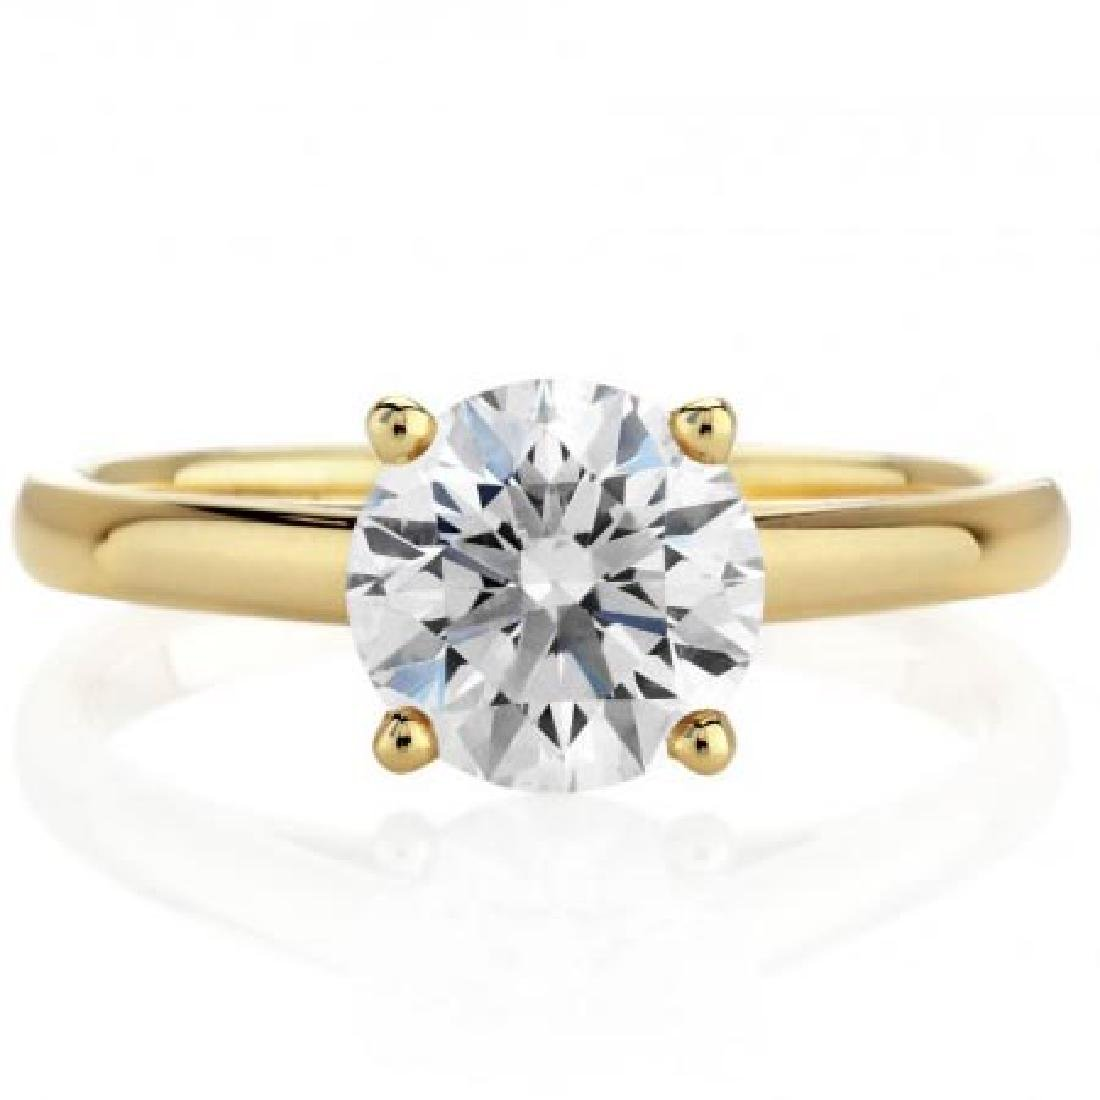 CERTIFIED 1 CTW ROUND H/VS1 SOLITAIRE RING IN 14K YELLO